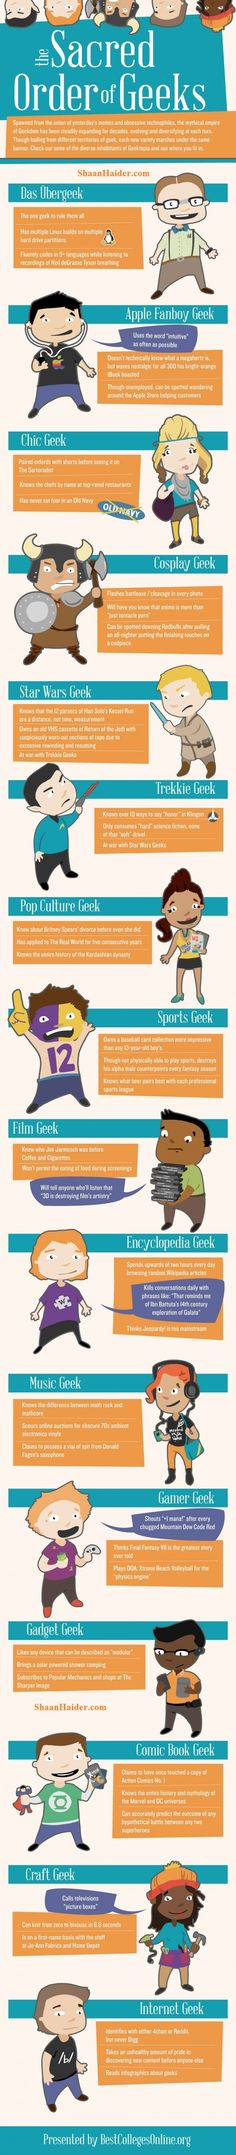 What Kind of Geek Are You? (Infographic)